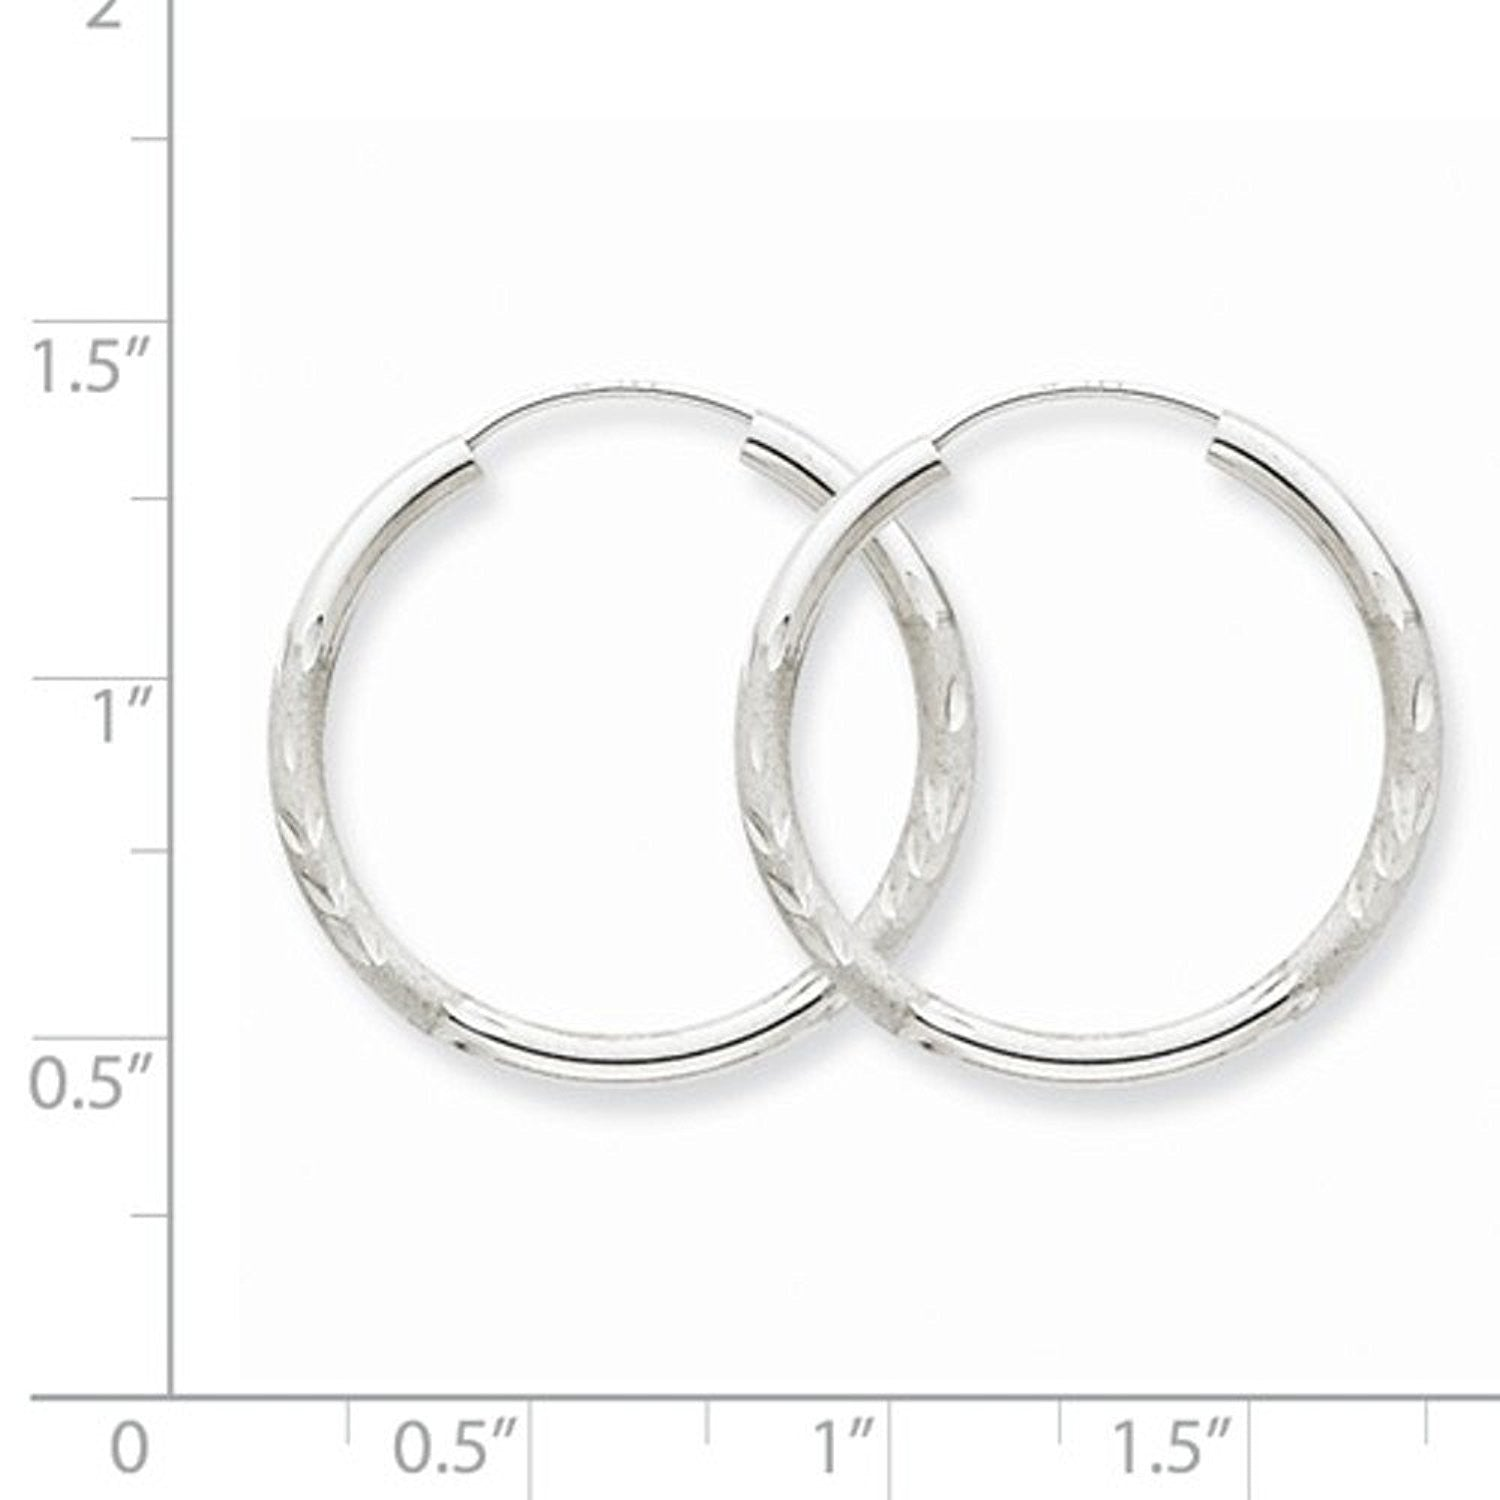 14K White Gold 23mm Satin Textured Round Endless Hoop Earrings